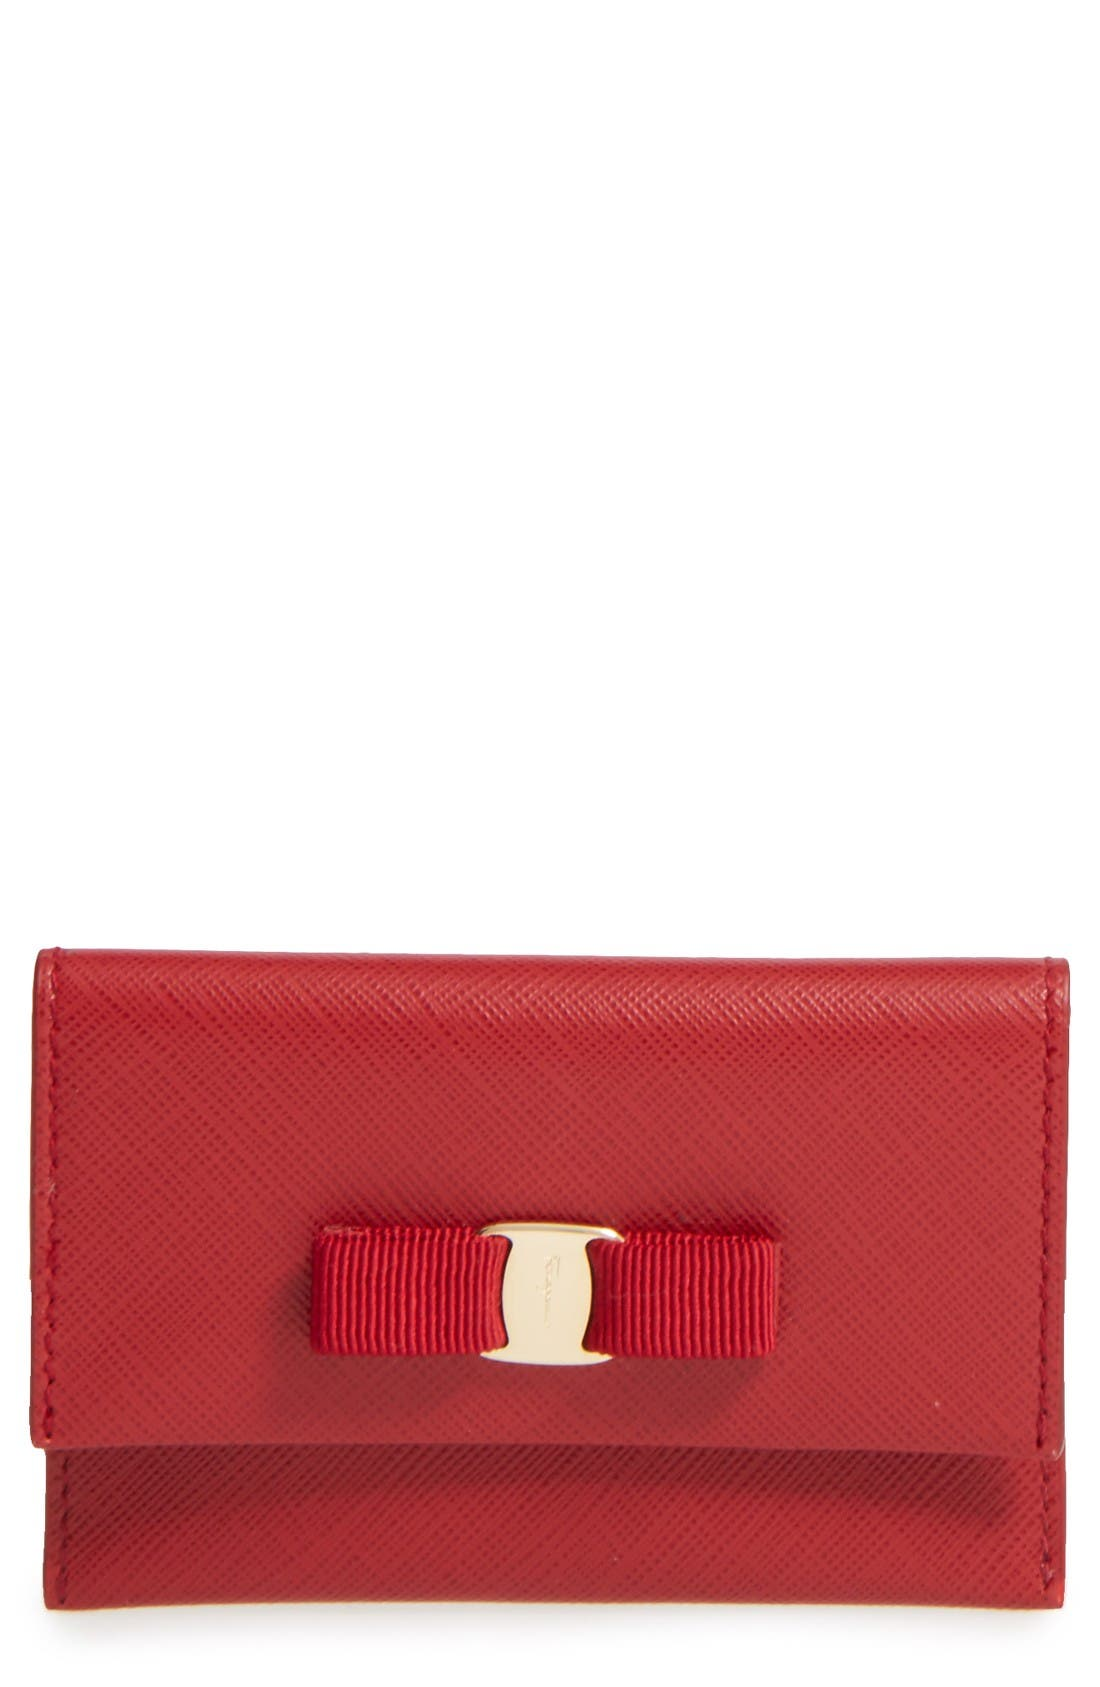 Vara Leather Card Case,                             Main thumbnail 1, color,                             Rosso